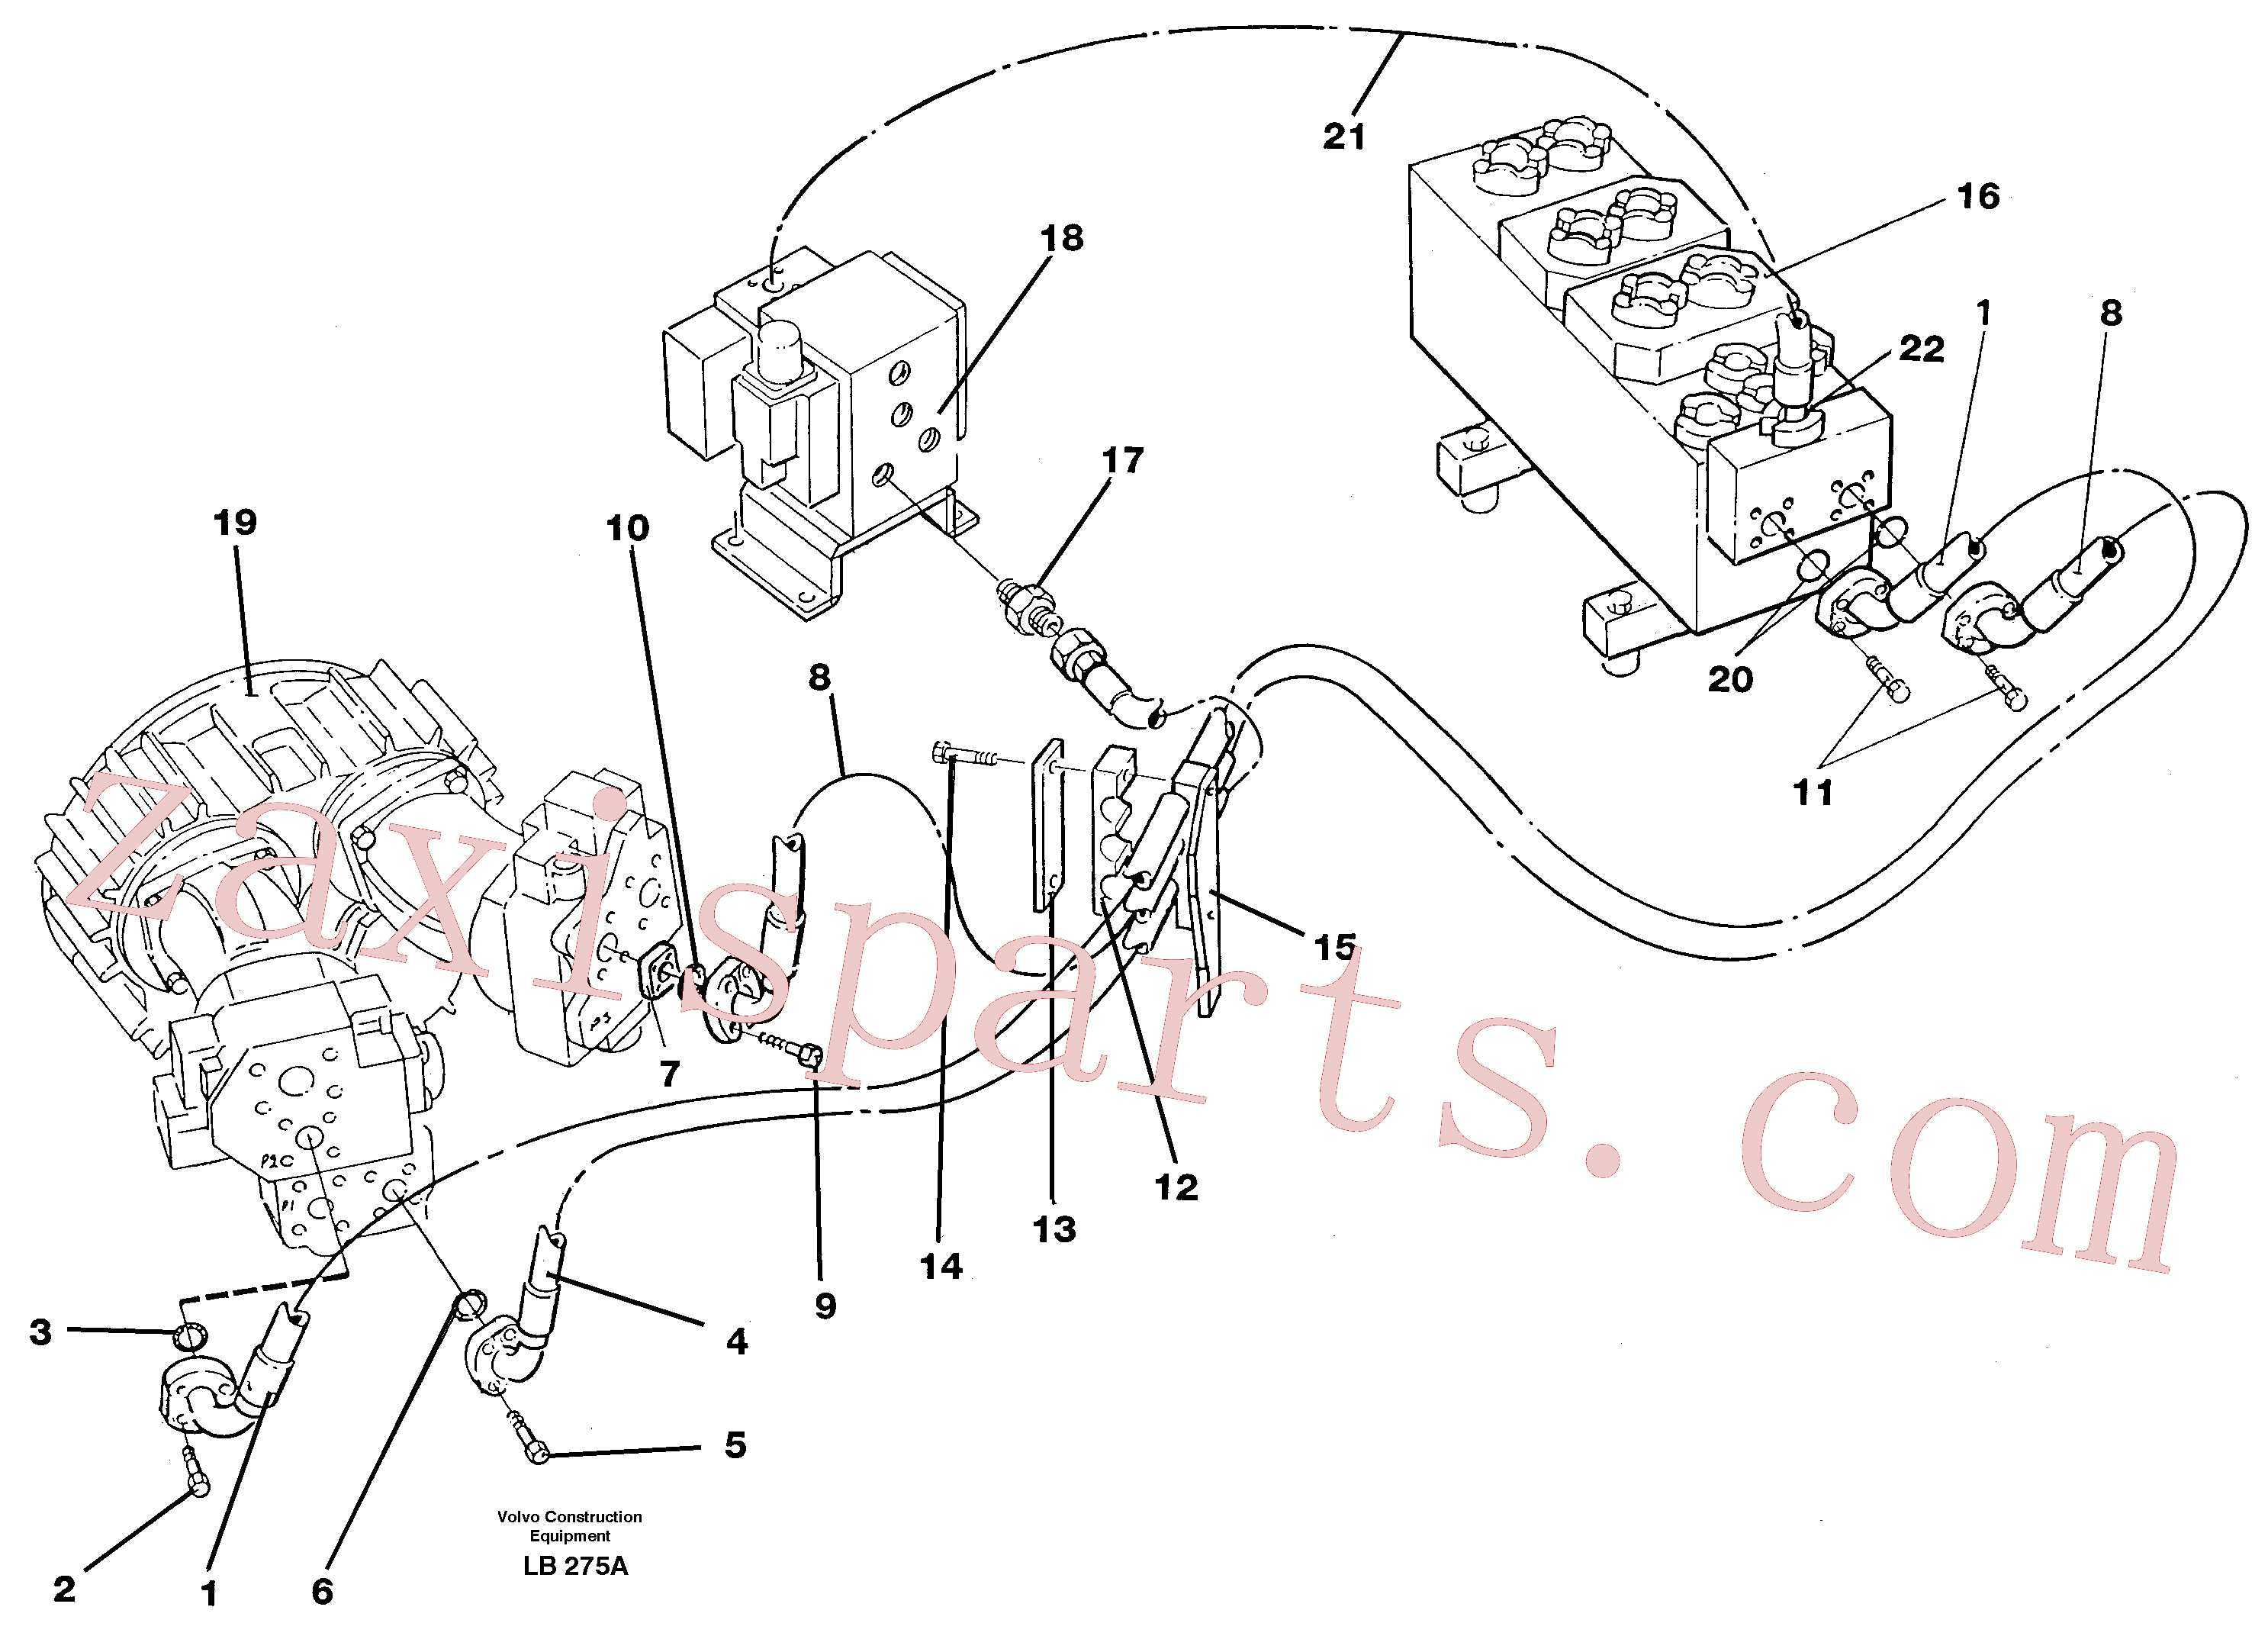 VOE14264009 for Volvo Hydraulic system, feed line(LB275A assembly)